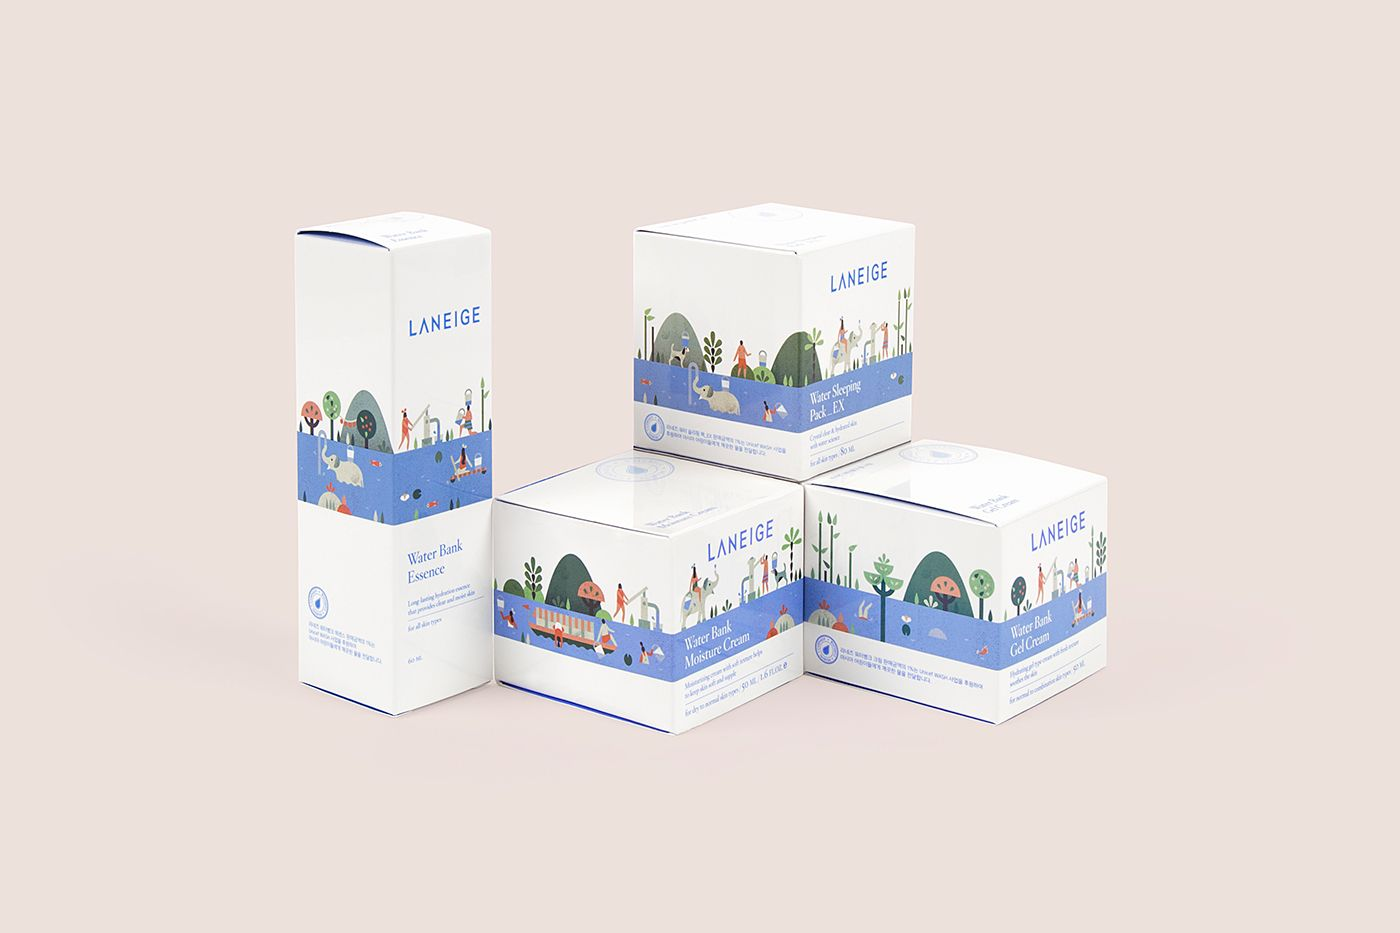 Packaging illustrations for Laneige, a South Korean cosmetics brand owned by Amore Pacific. The special edition packaging and related Waterful campaign aimed to bring awareness to the company's program constructing water tanks in African countries sufferi…